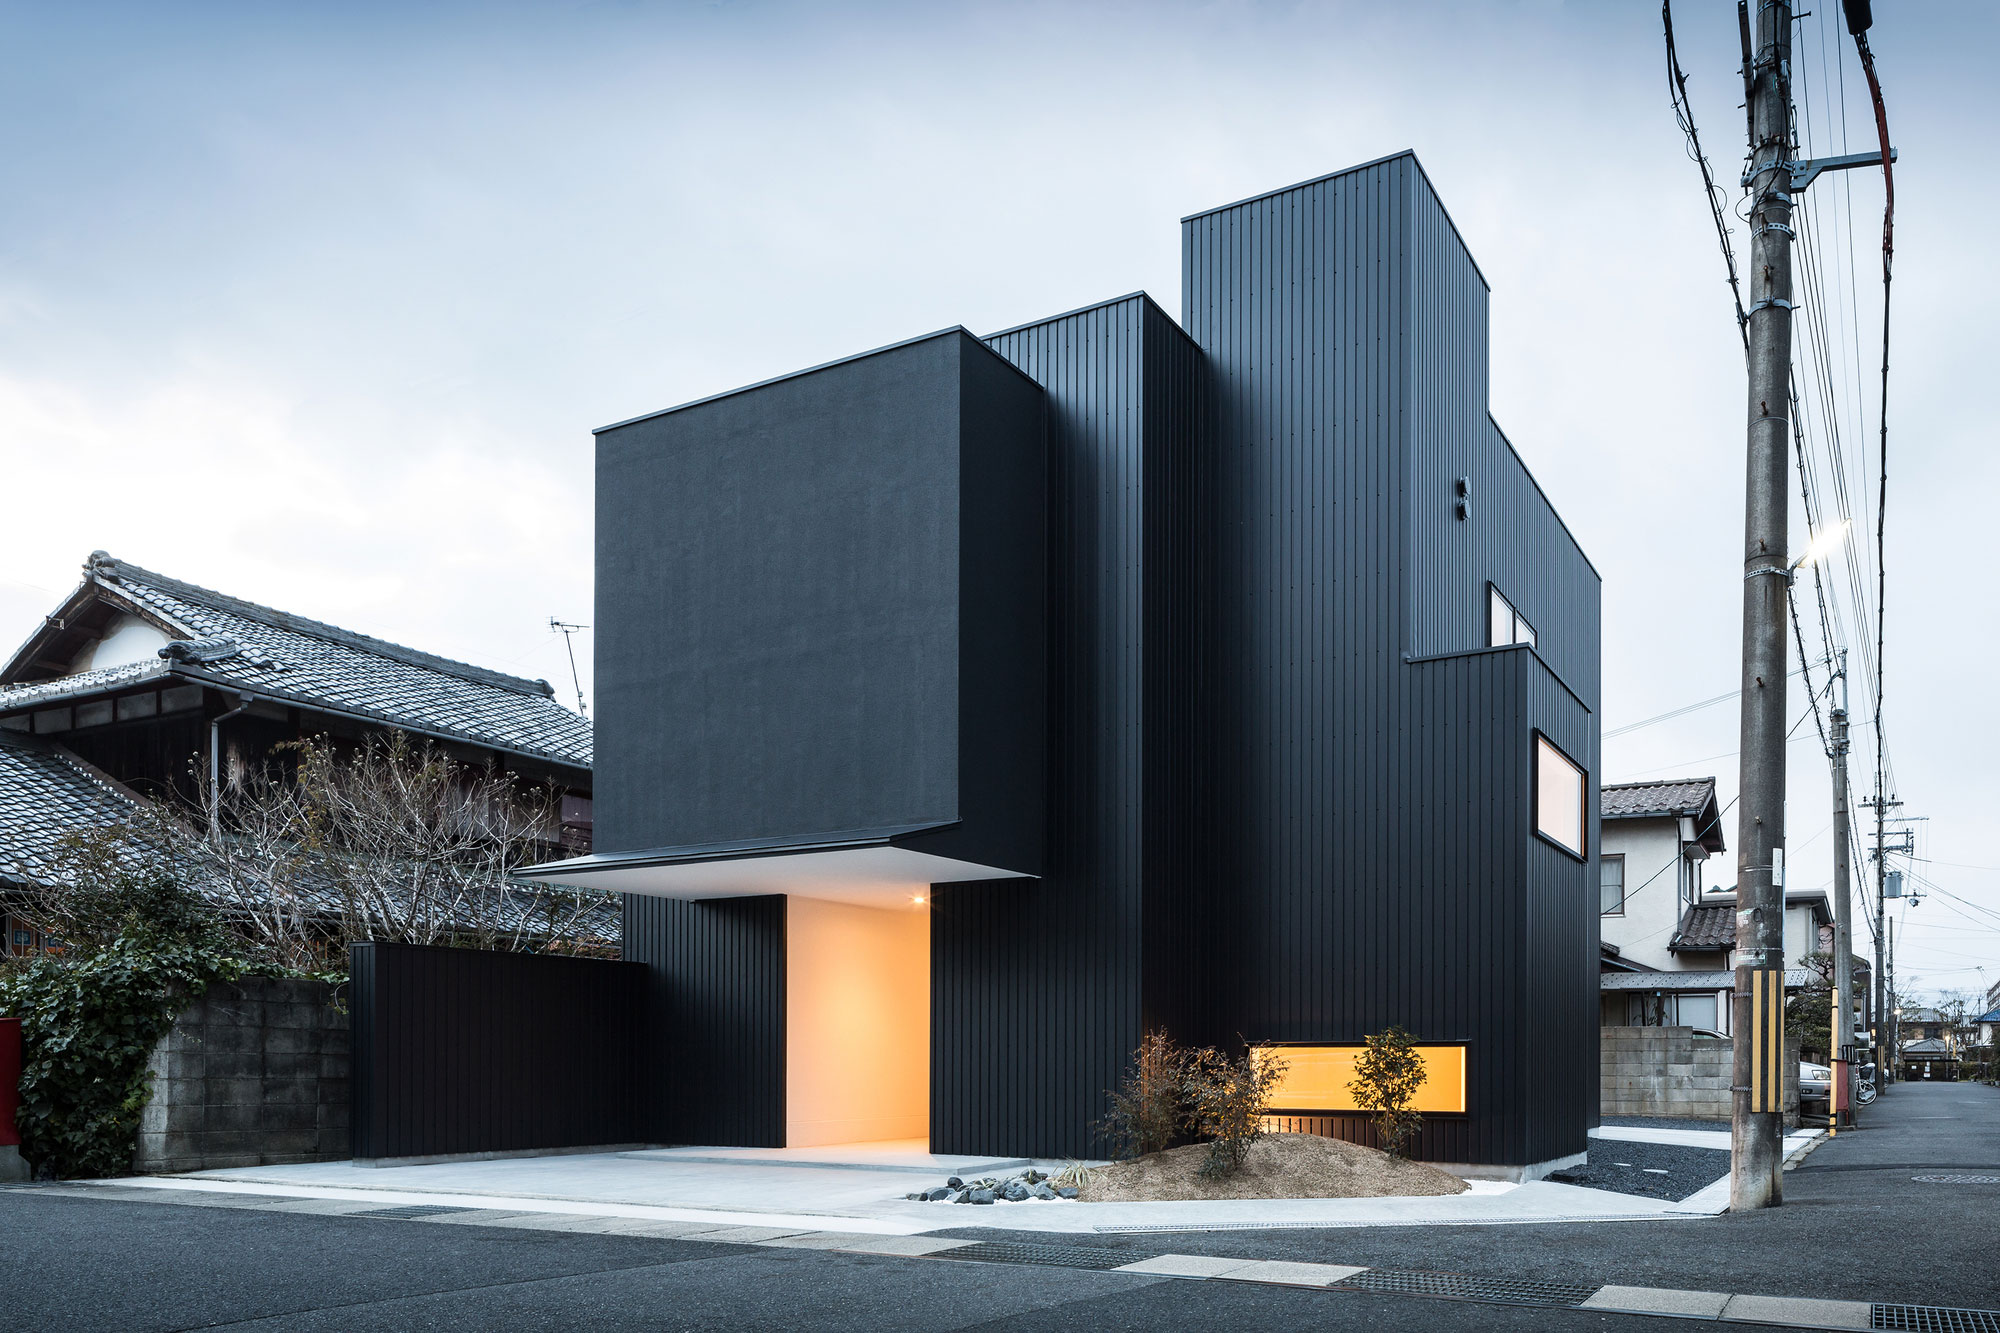 Framing House by FORM | Kouichi Kimura Architects